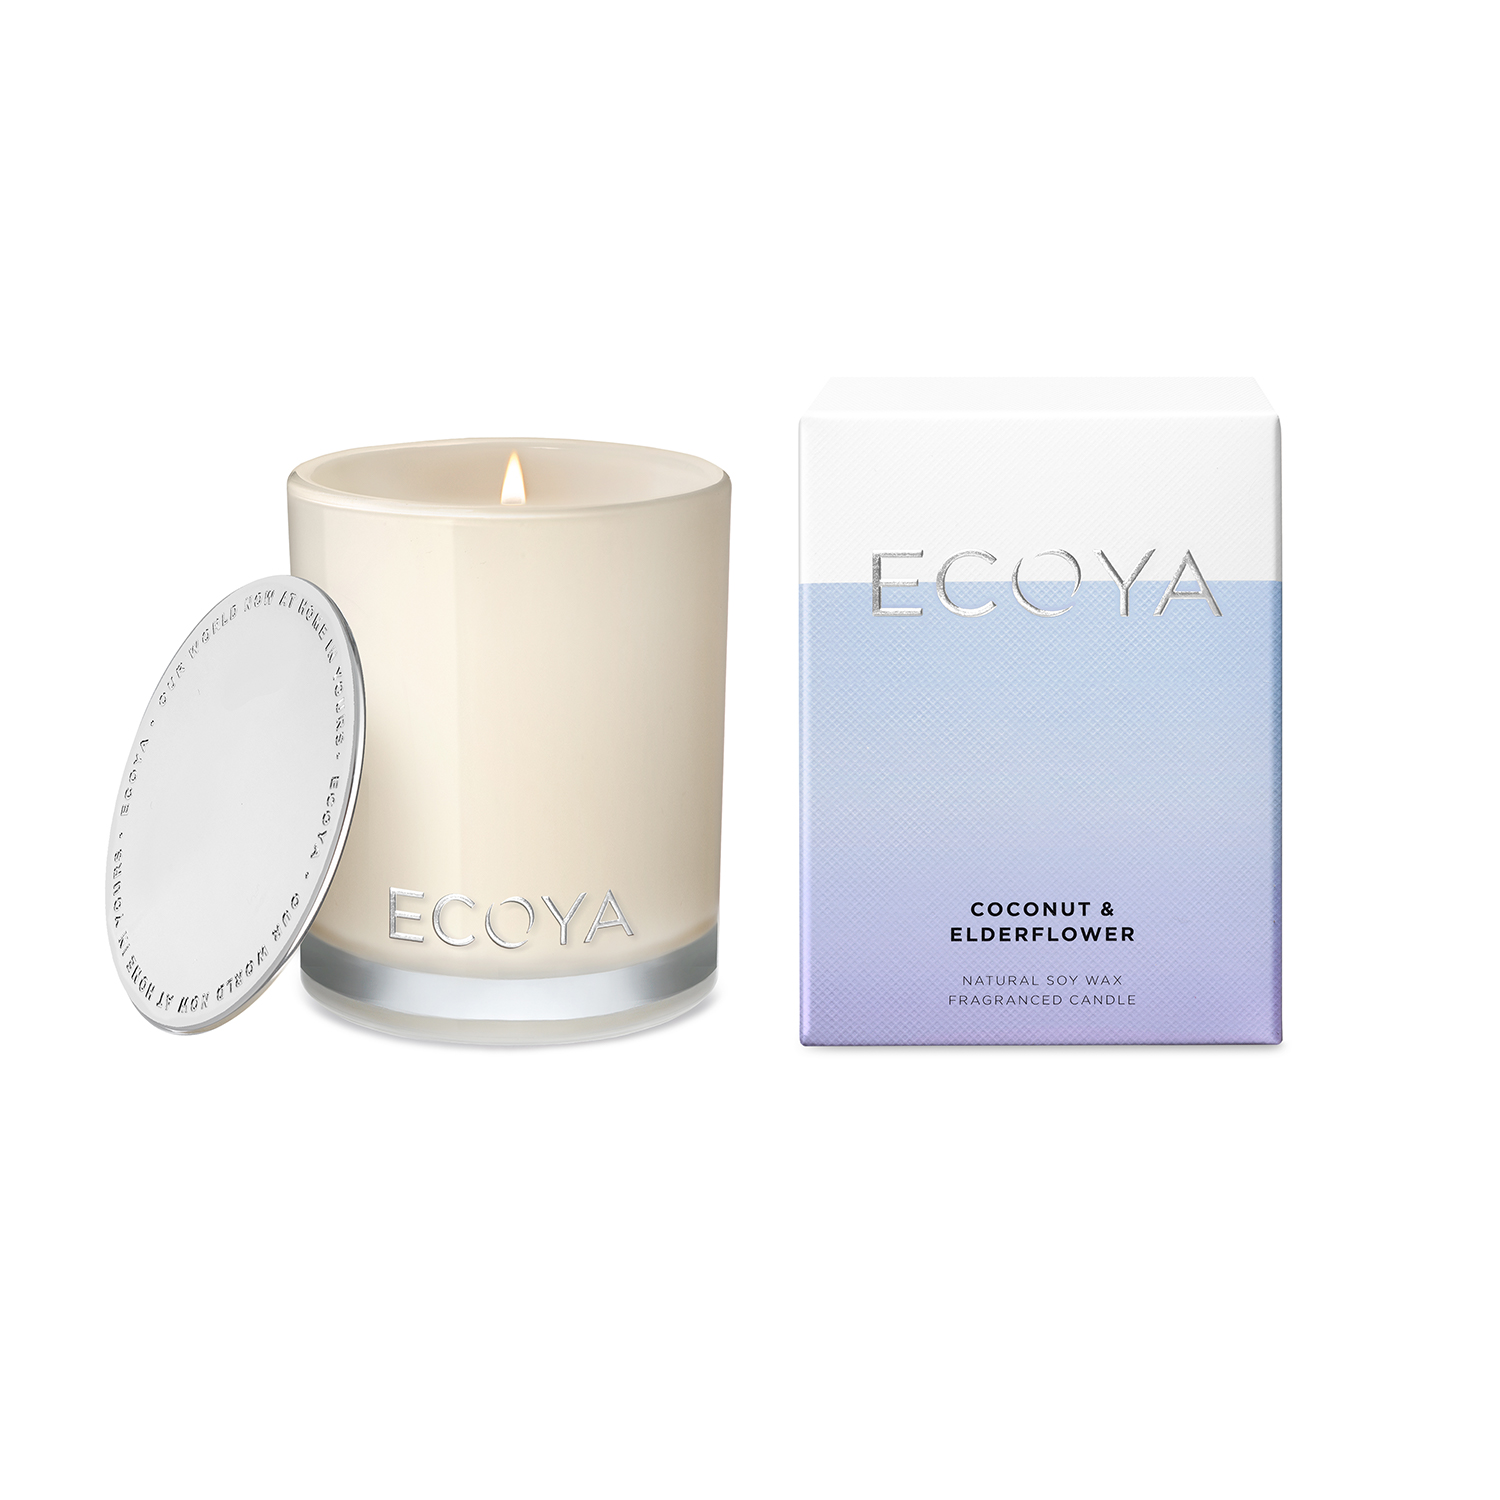 Ecoya Madison Jar Coconut & Elderflower Candle 400g